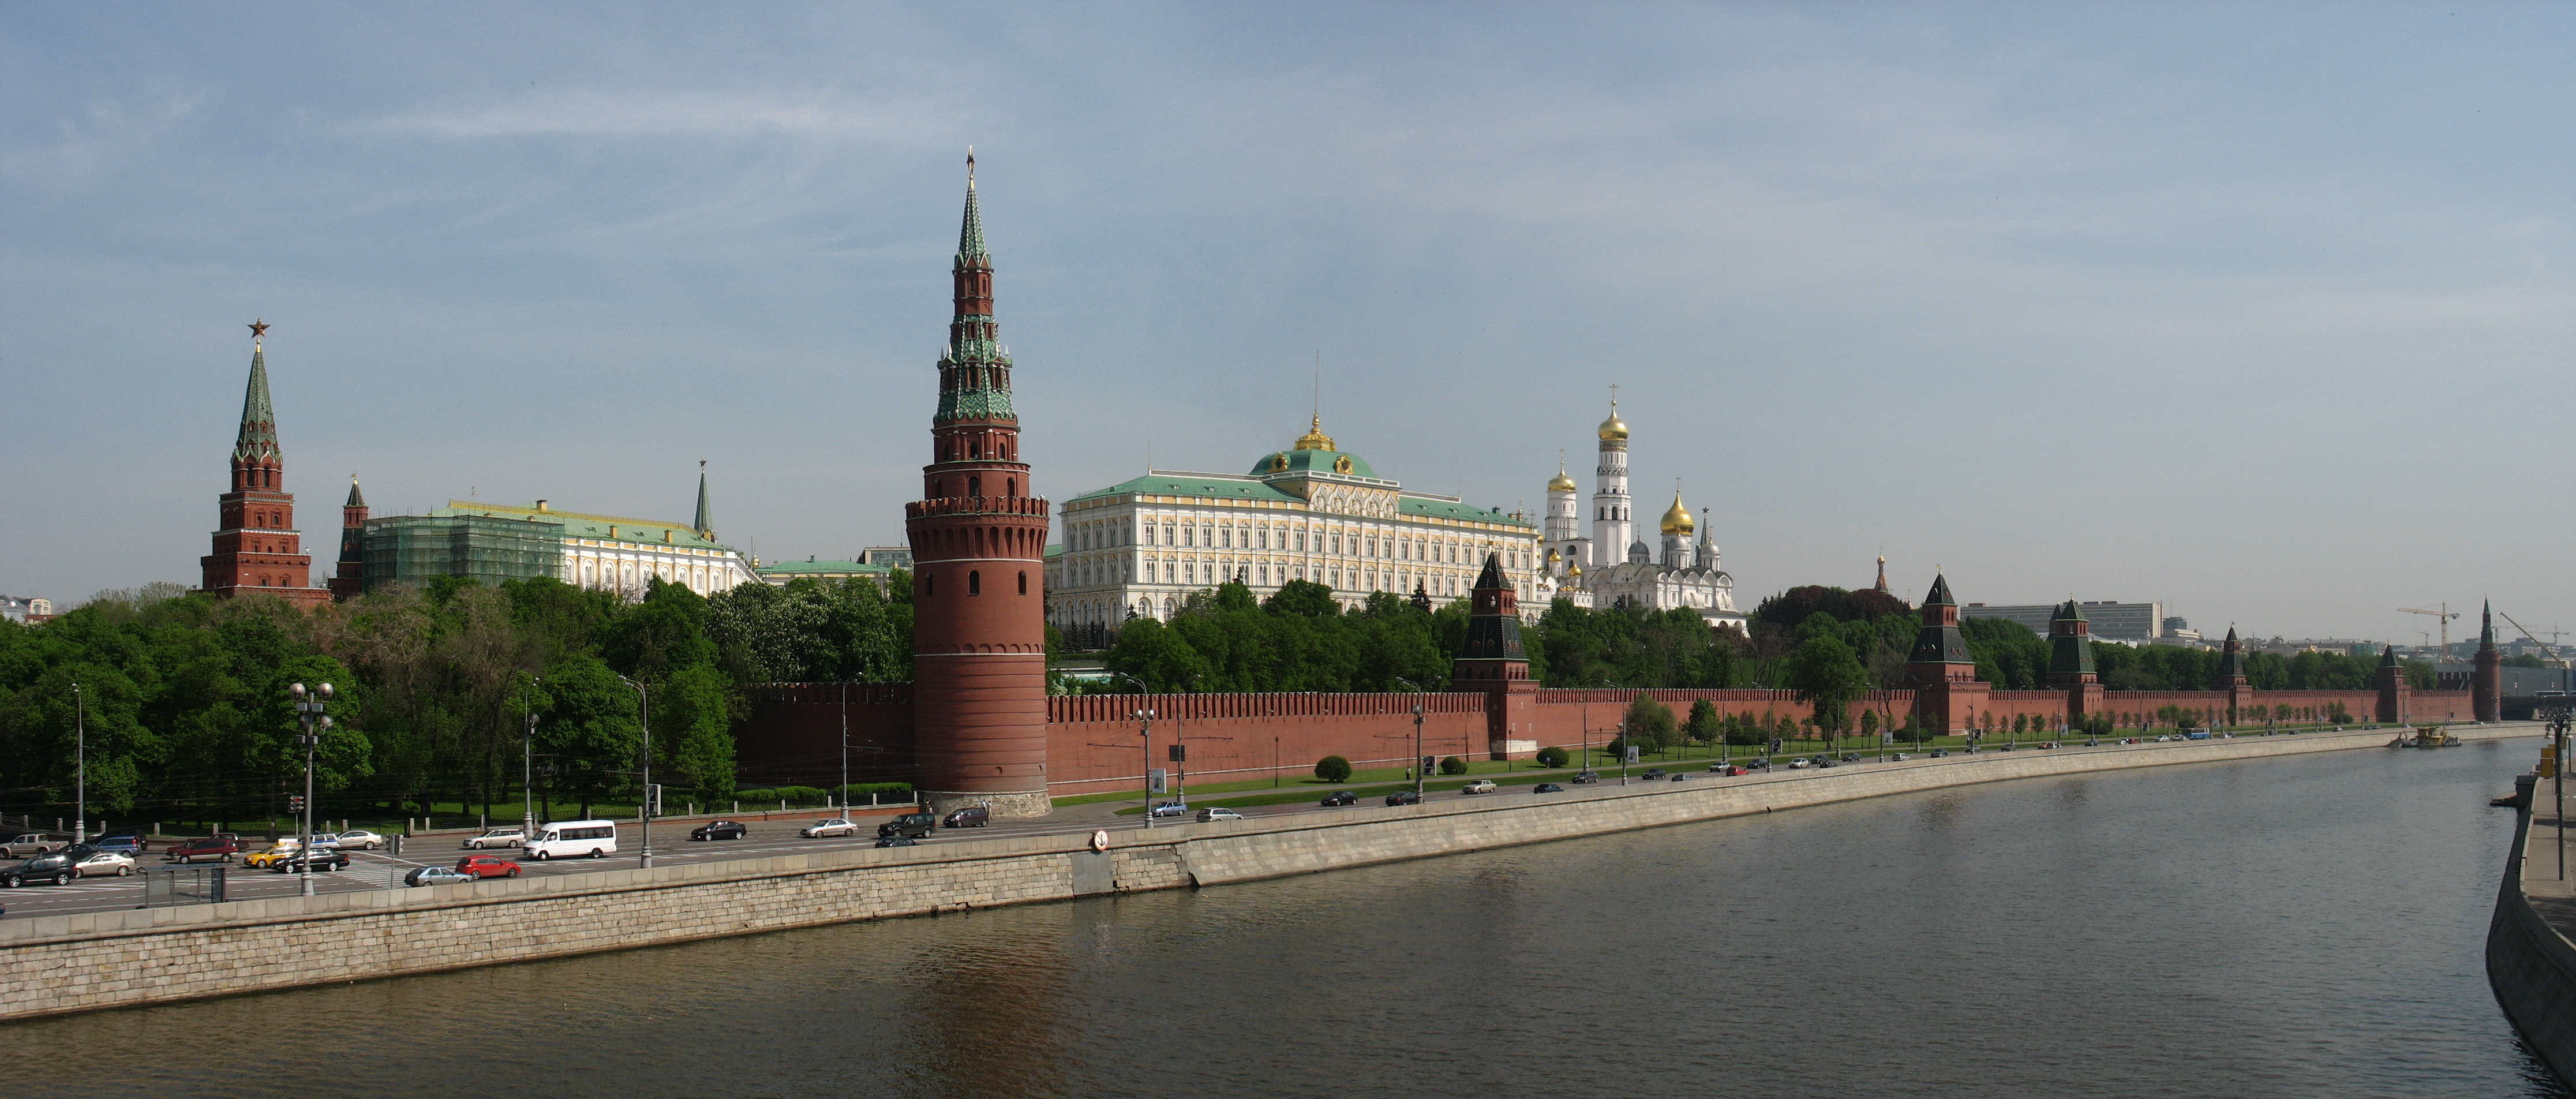 http://upload.wikimedia.org/wikipedia/commons/a/ab/Panorama_of_Moscow_Kremlin.jpg